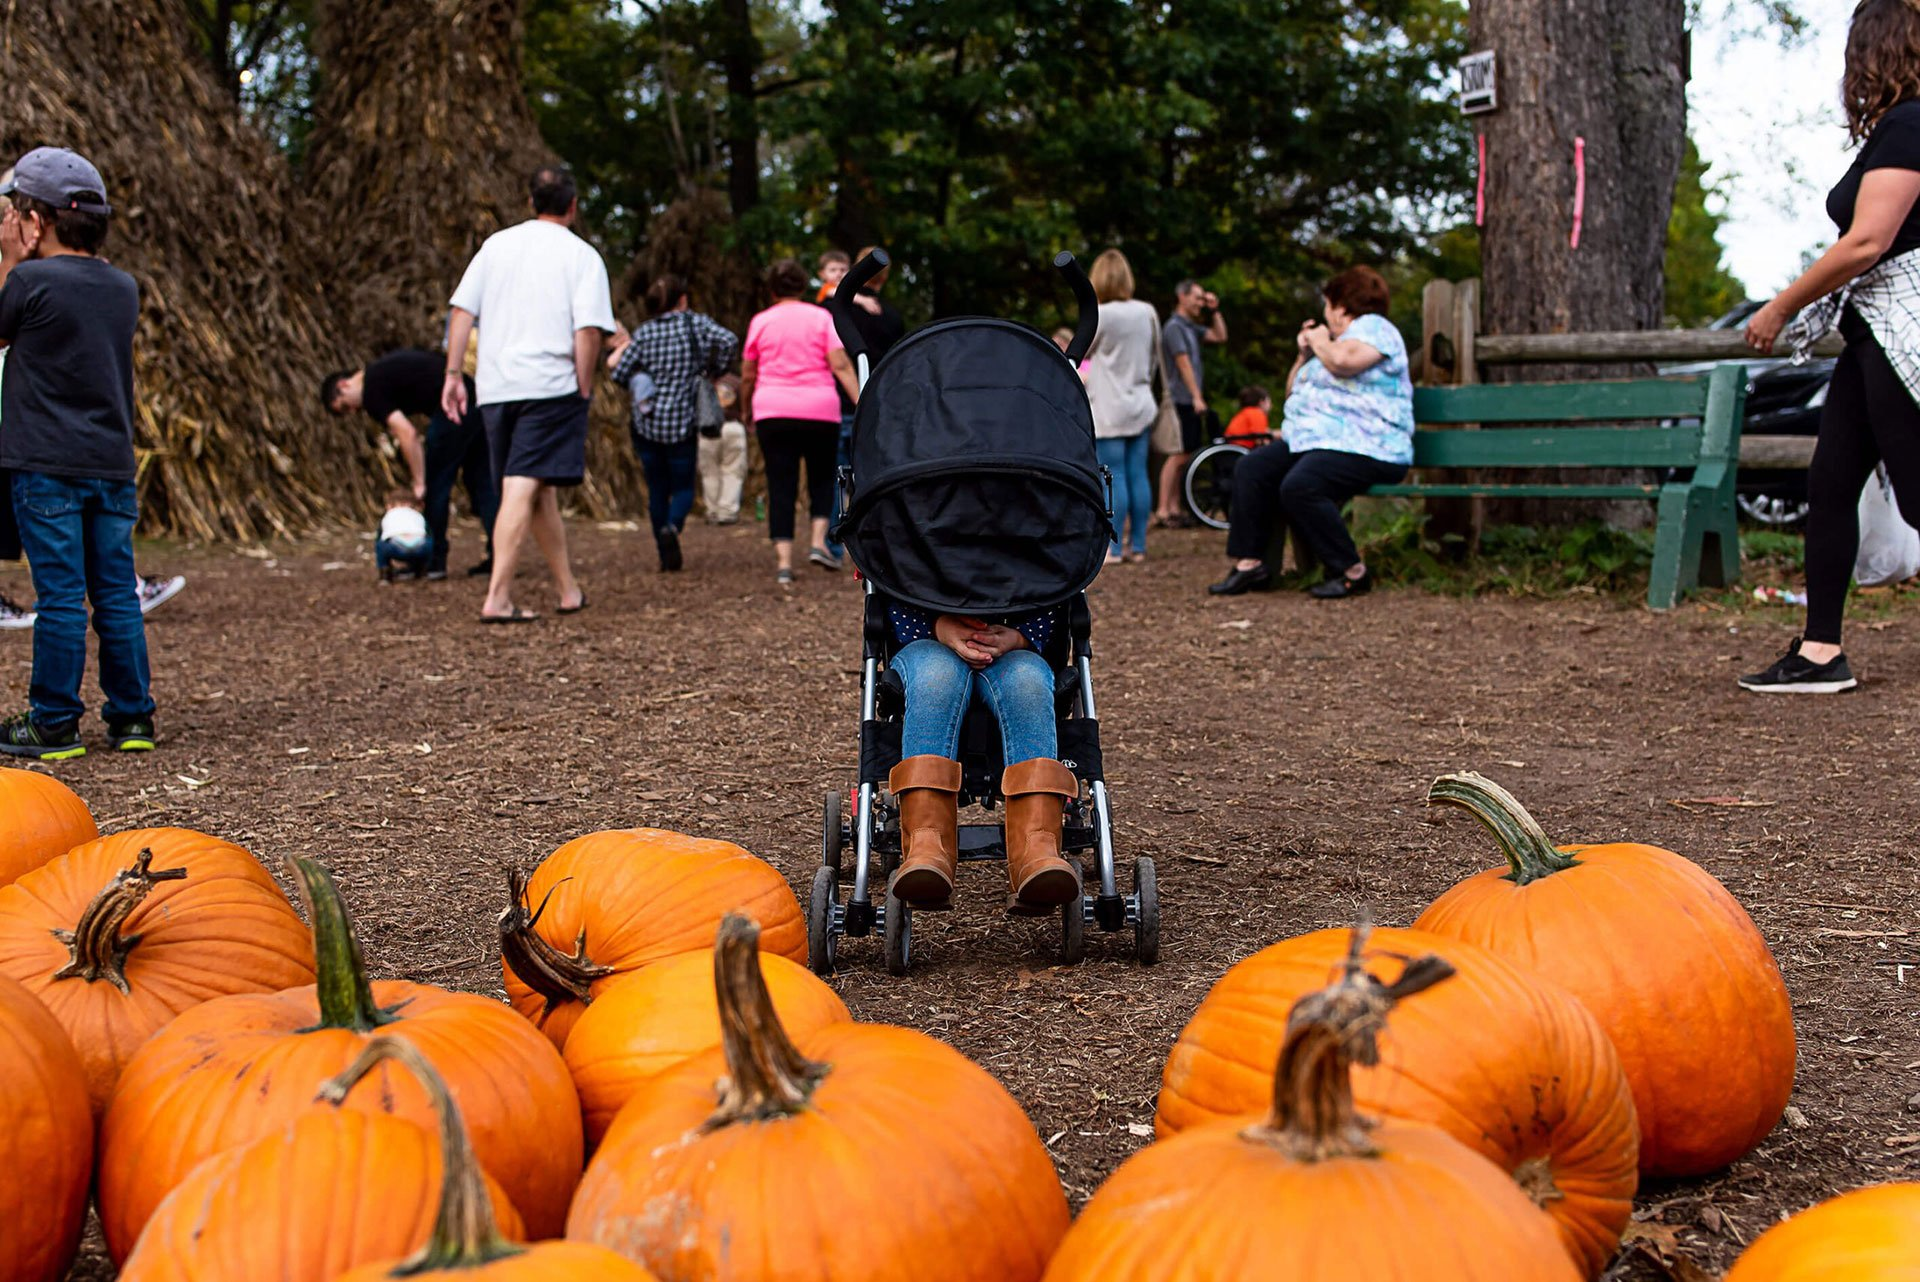 Child with stroller hood over face in pumpkin patch